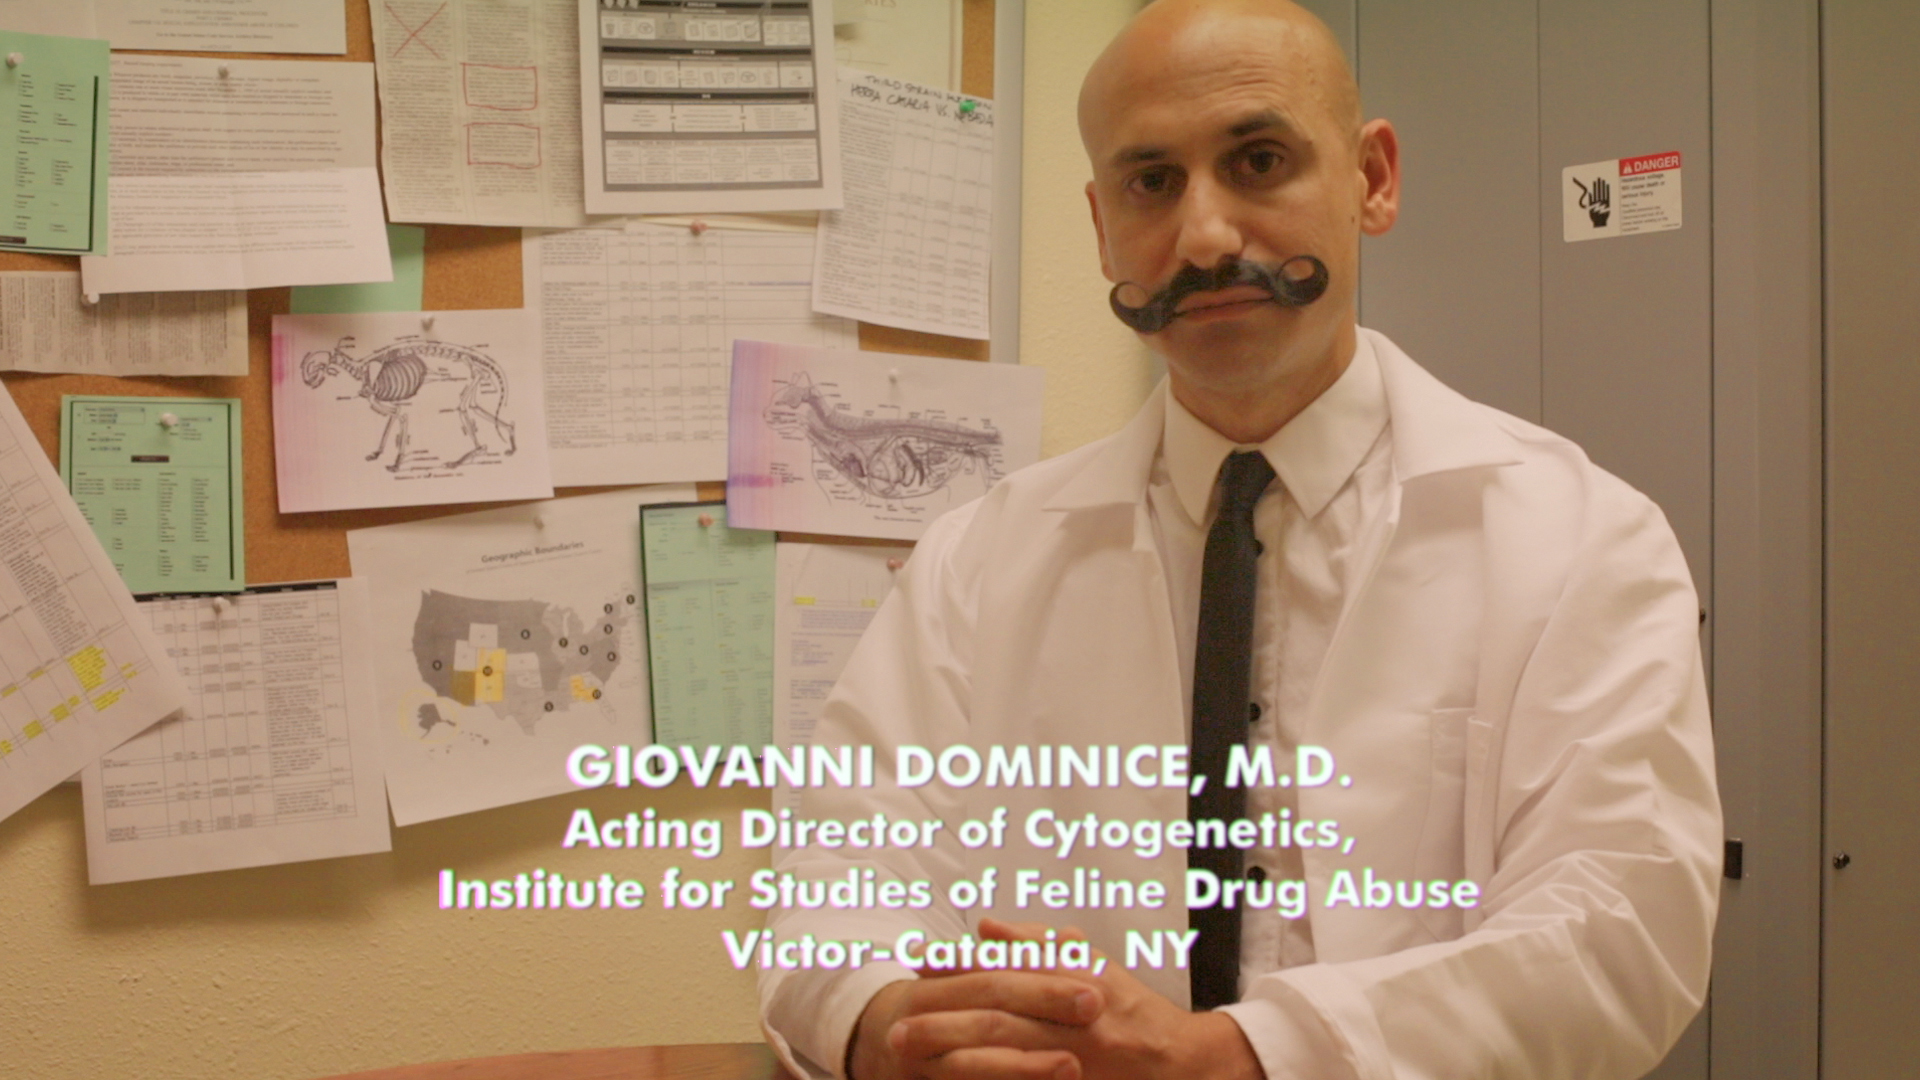 Giovanni Dominice MD